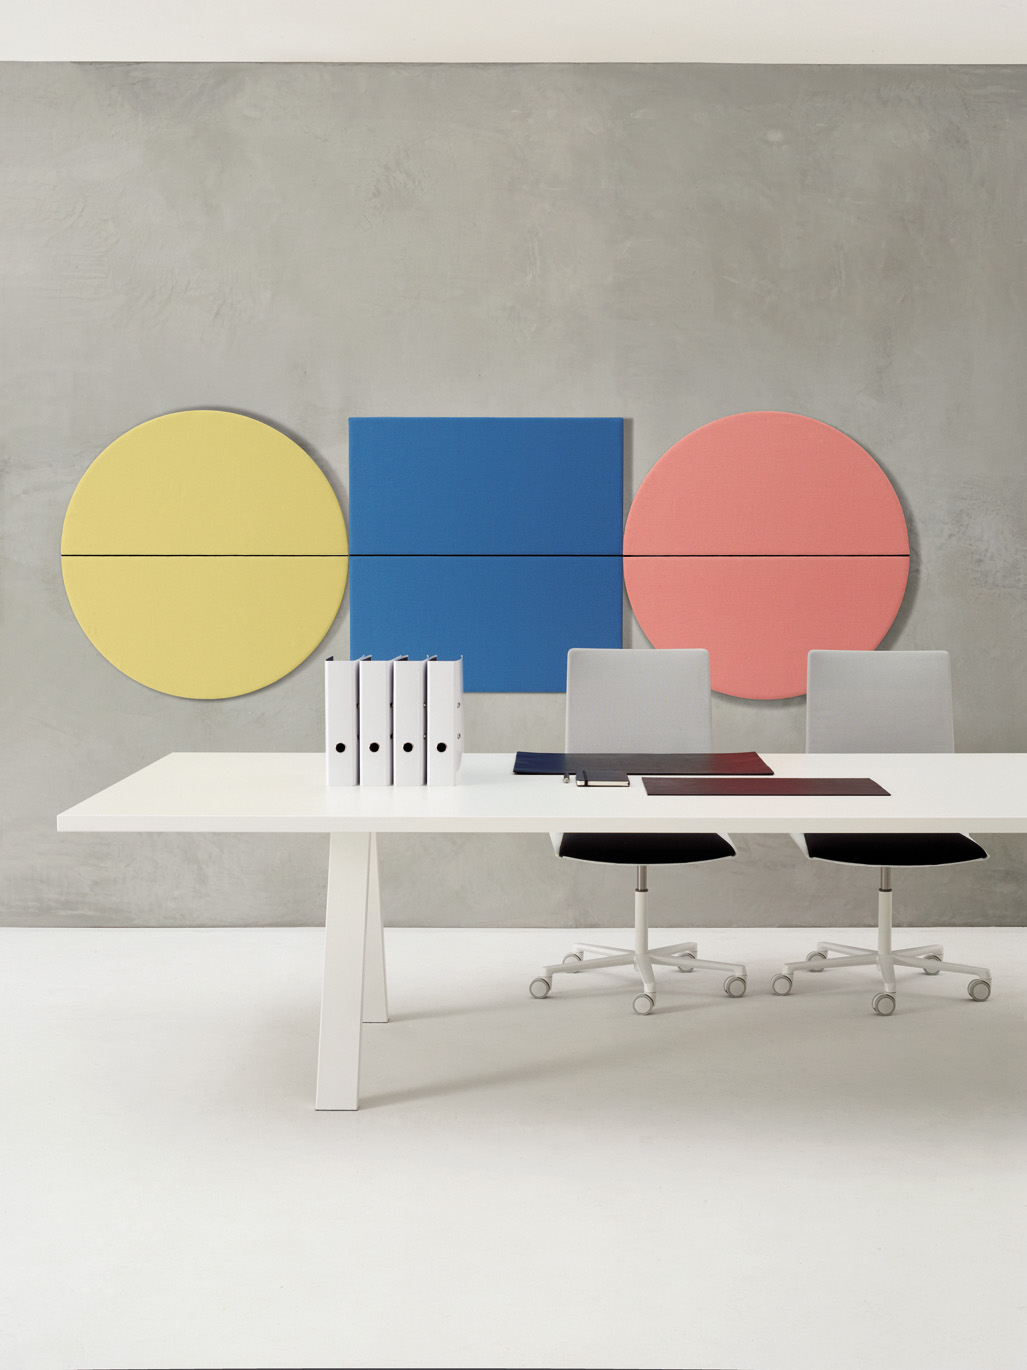 Parentesit is a line of acoustic panels in different geometric shapes, designed to add a bold touch to any corporate environment. Brightly coloured modular units have round, oval and square...